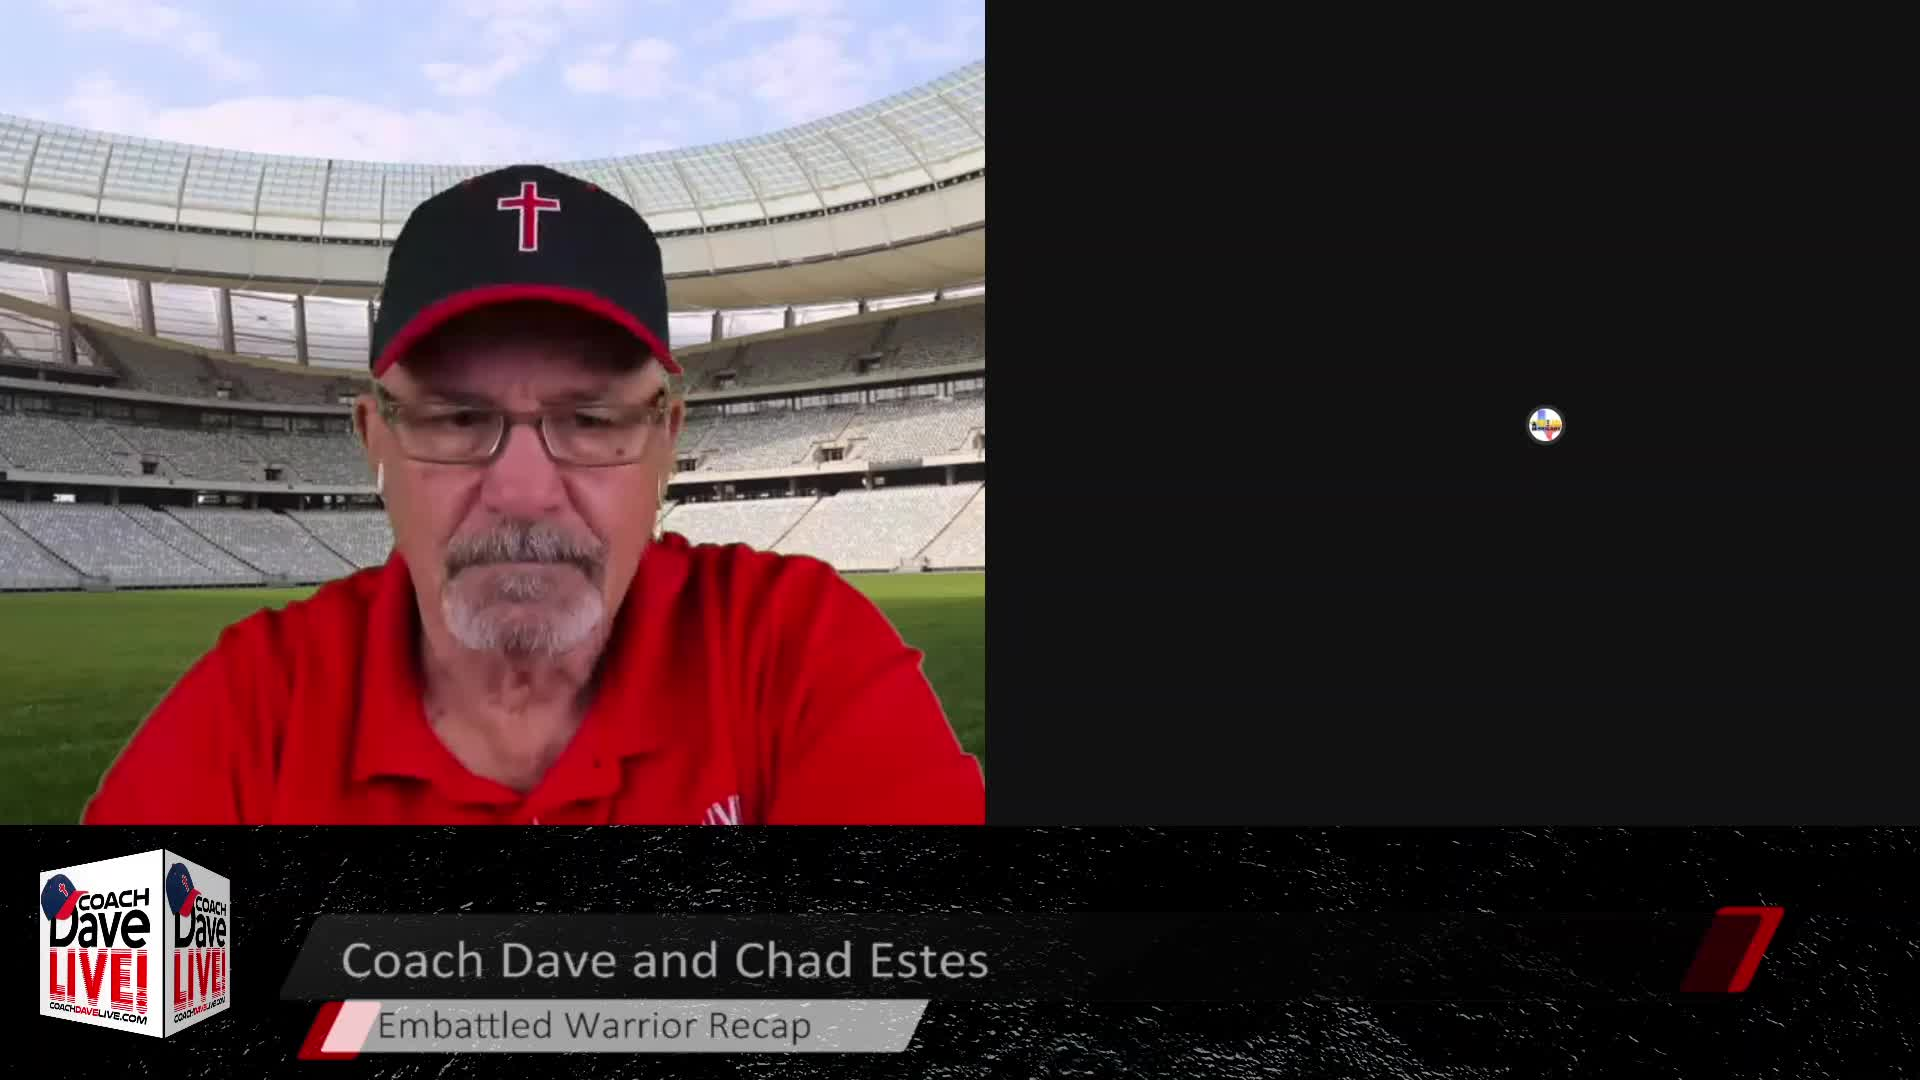 Coach Dave LIVE | 4-12-2021 | SORRY KIDS, THE ADULTS HAVE LIED TO YOU - AUDIO ONLY